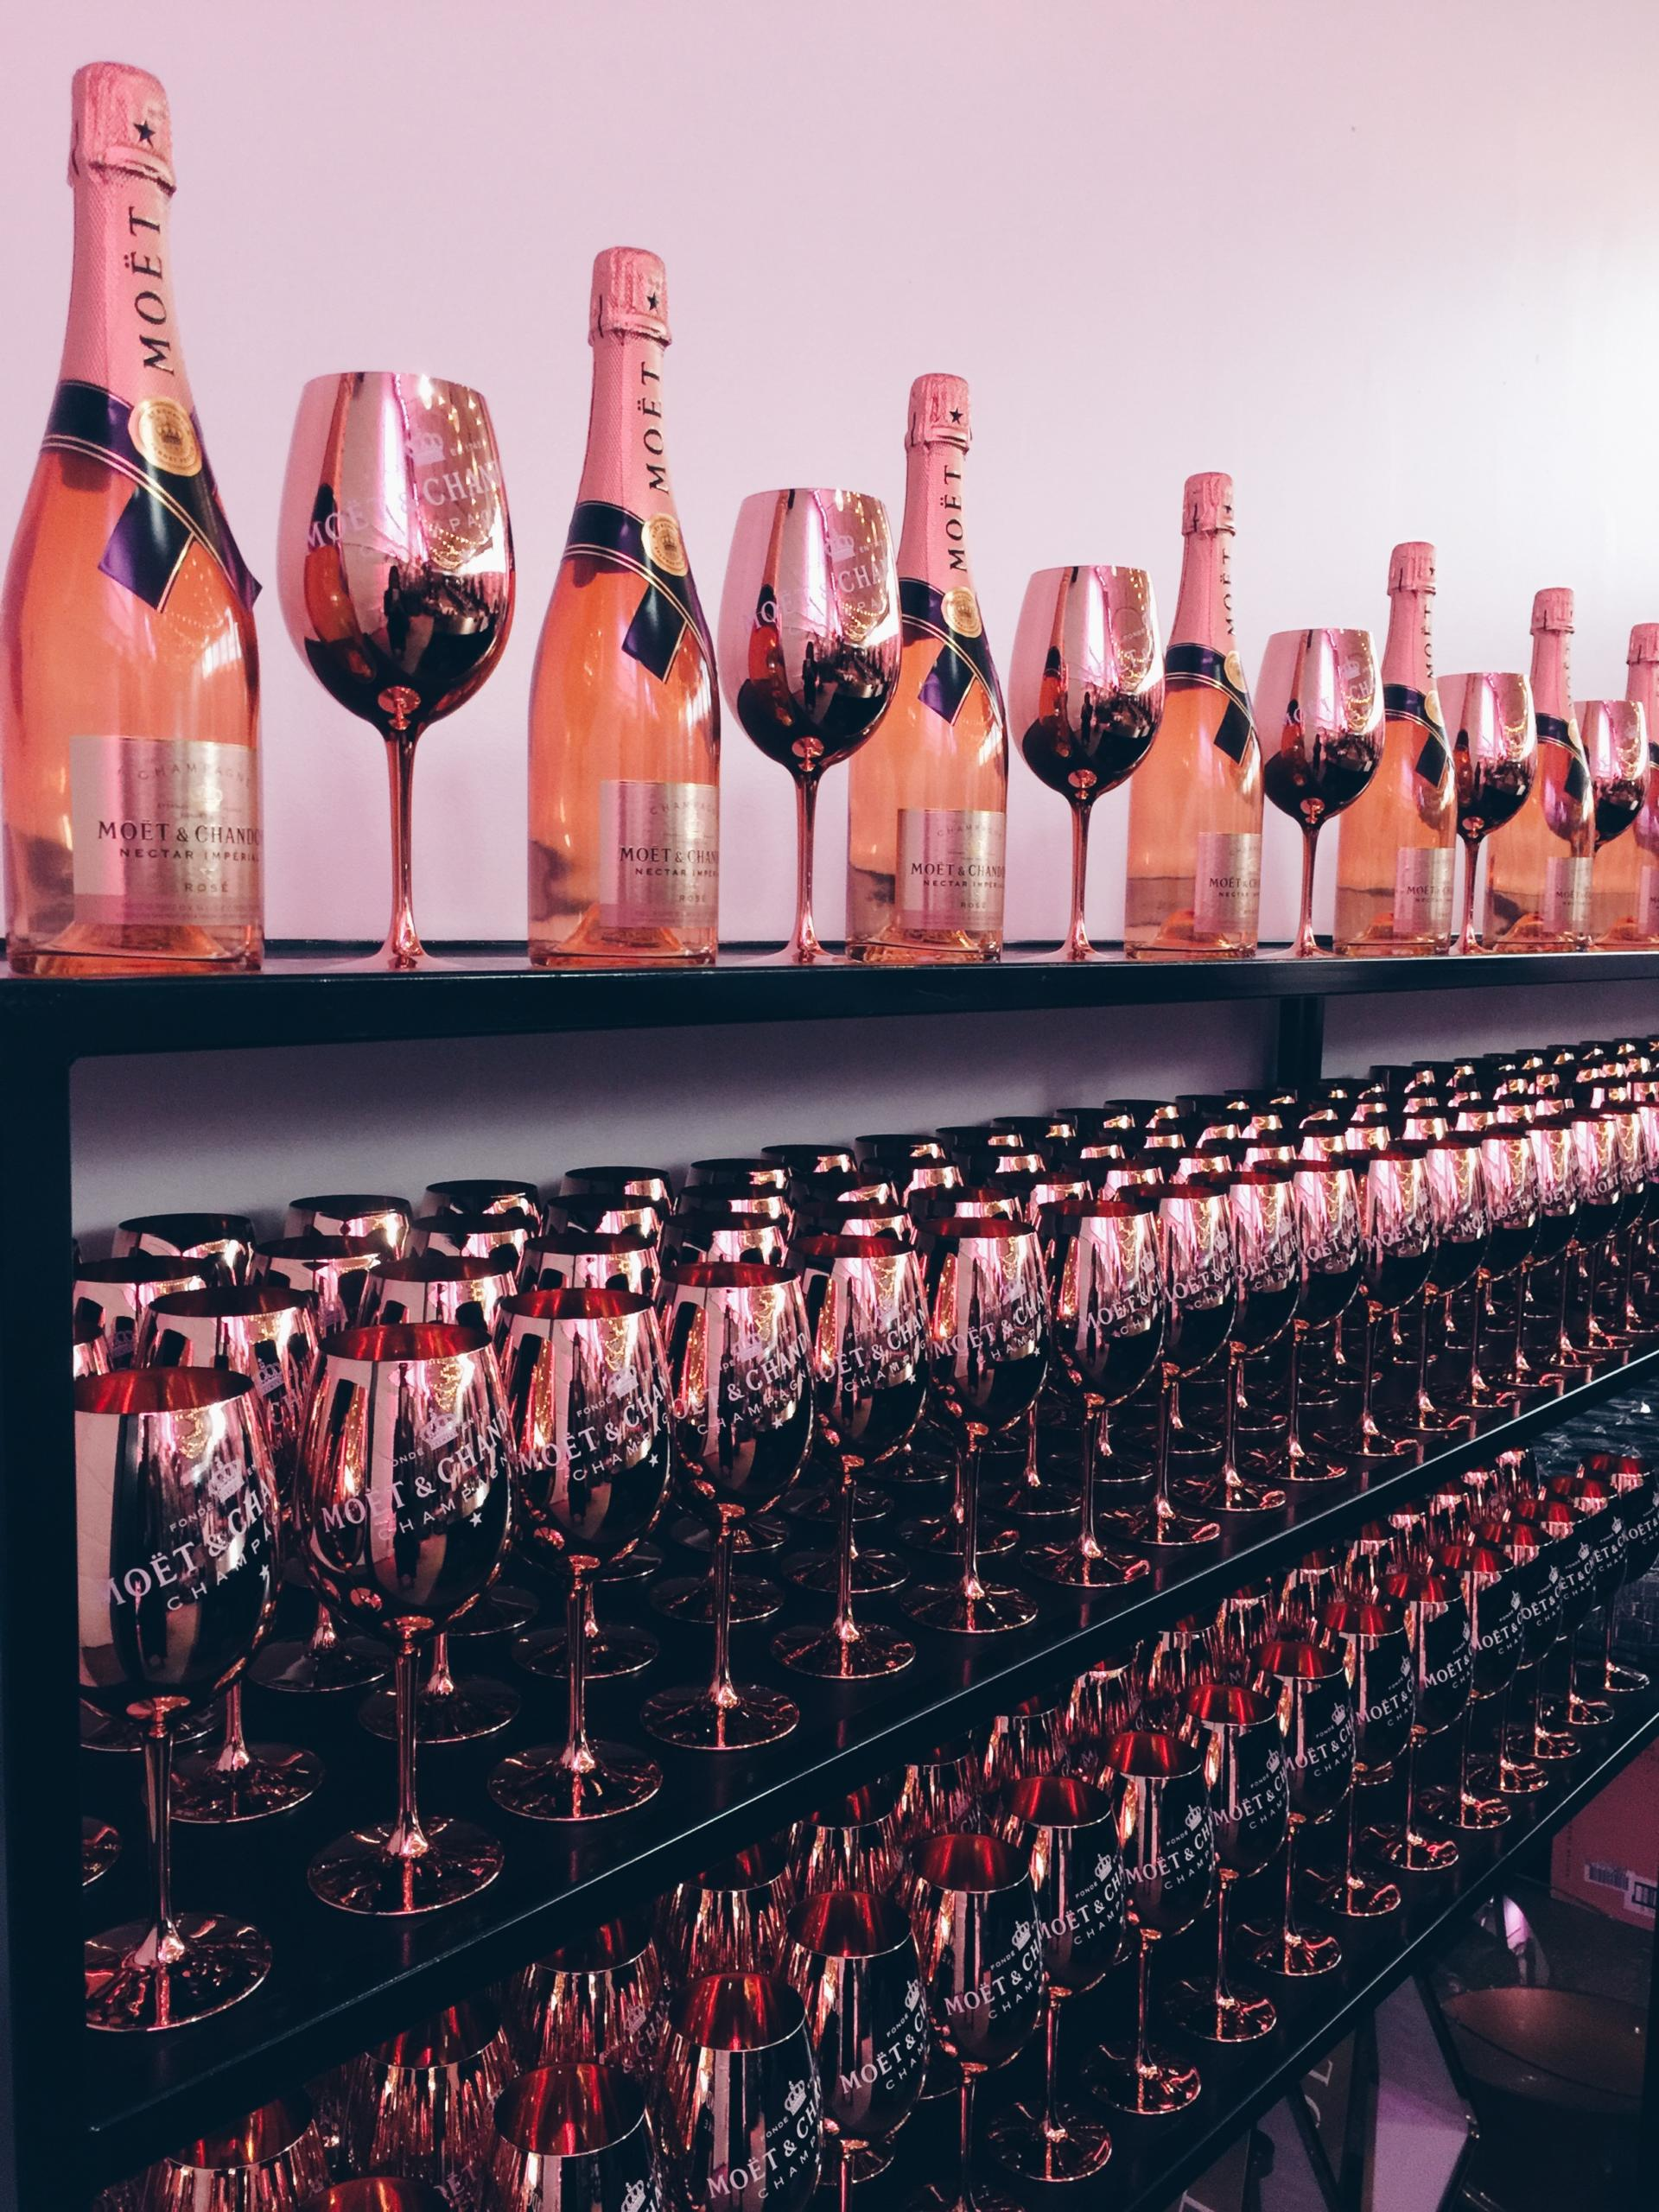 My MoëtMoment: The Launch of Nectar Impérial Rosé